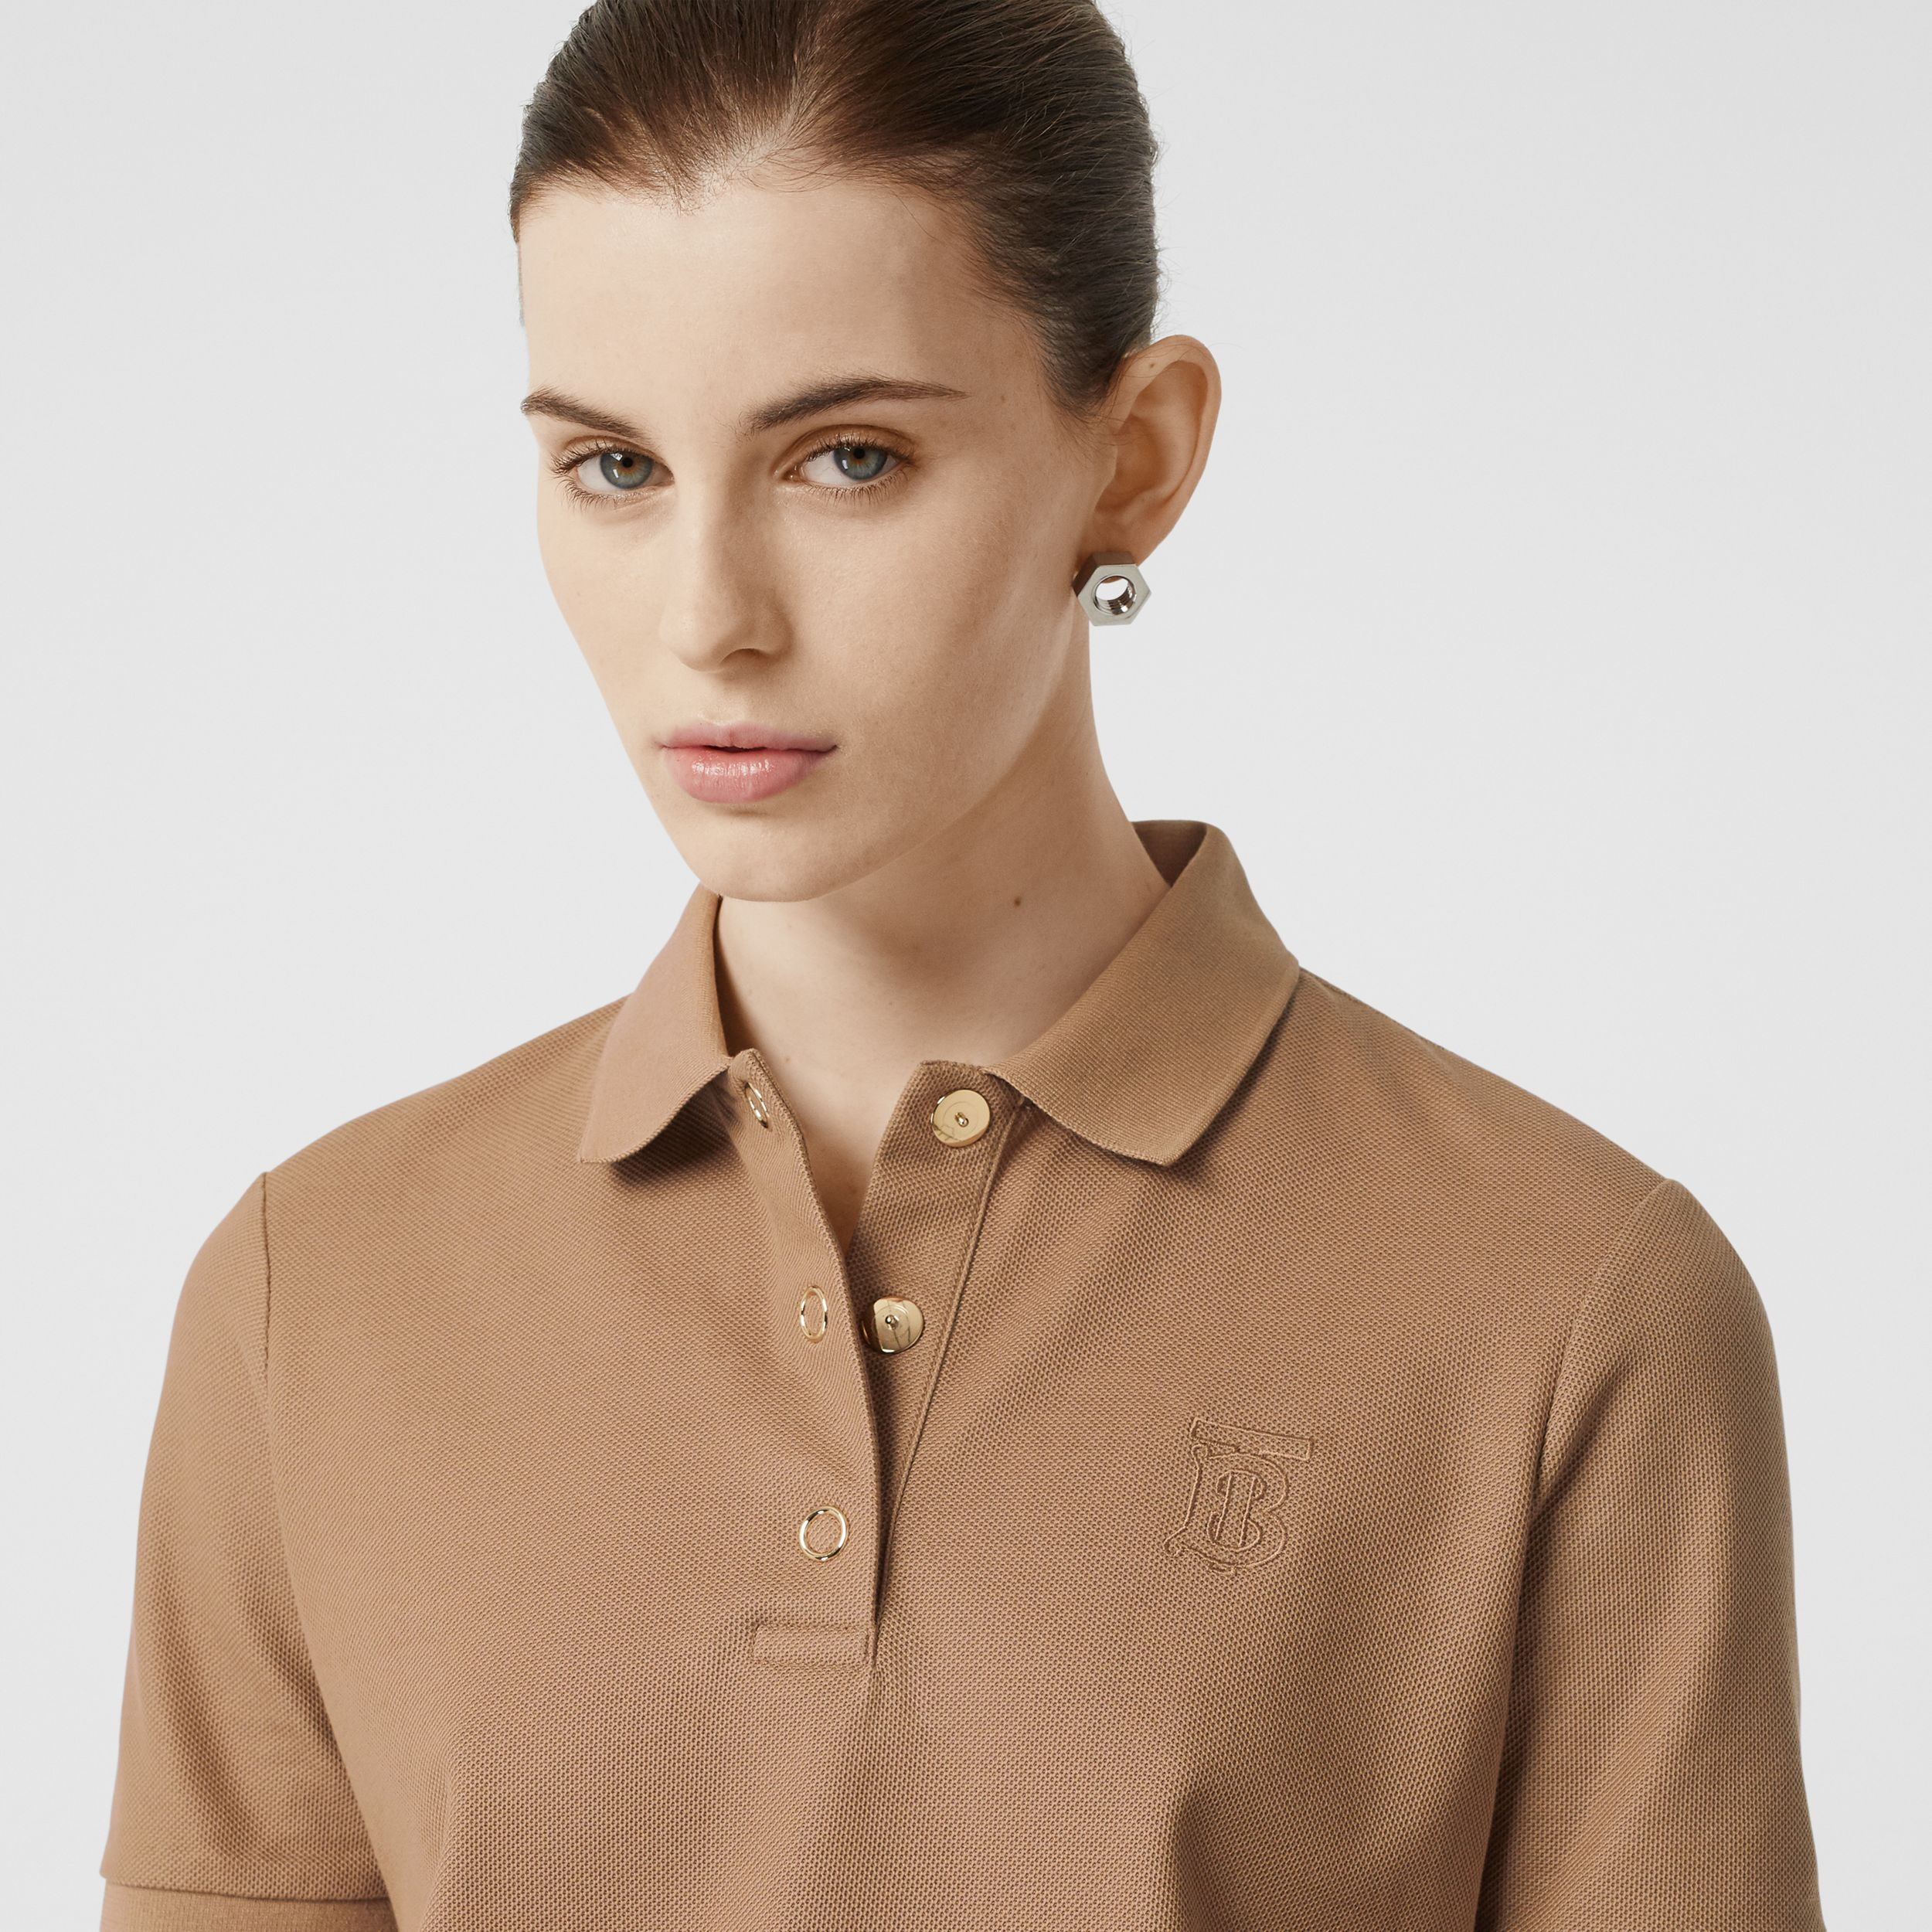 Monogram Motif Cotton Piqué Polo Shirt in Camel - Women | Burberry Singapore - 2